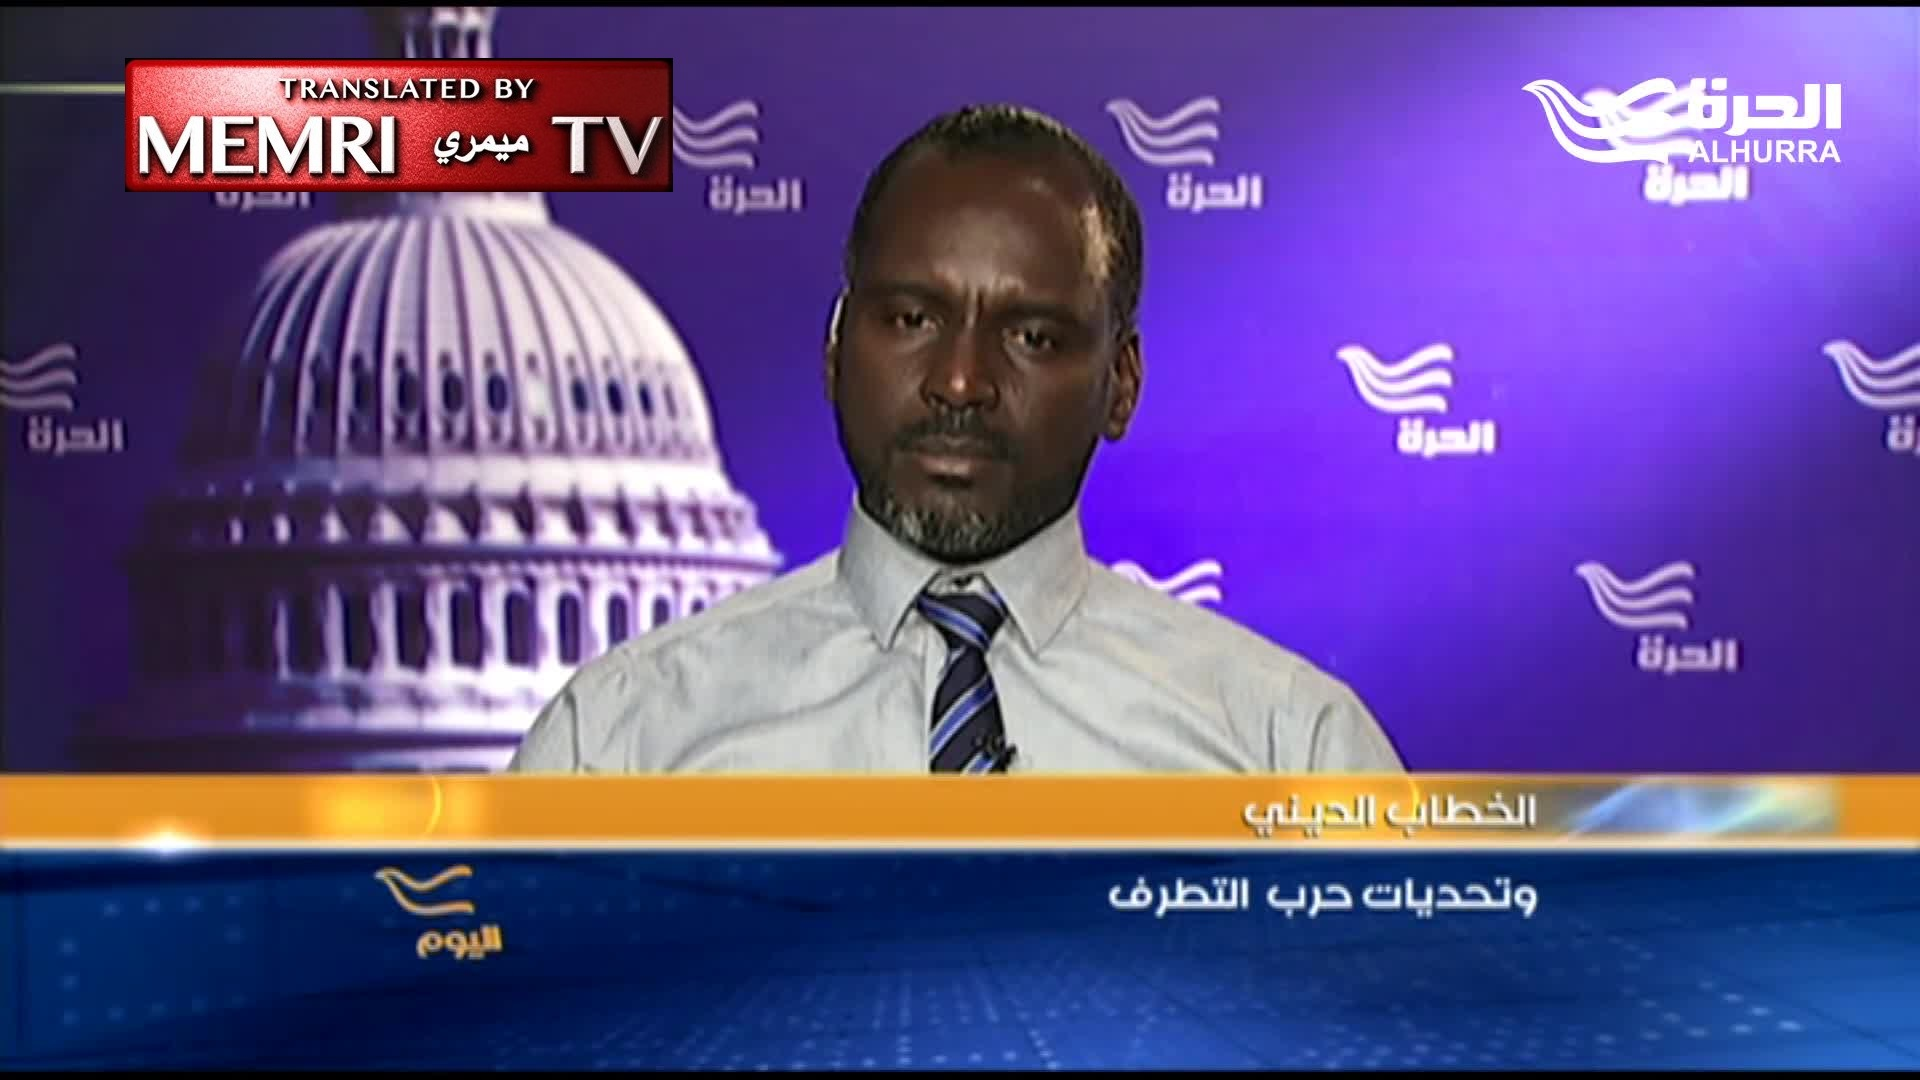 MEMRI Director of Reform Mansour Al-Hadj: We Should Train Our Own Imams in the U.S., Export Our Tolerant Islam to the Middle East